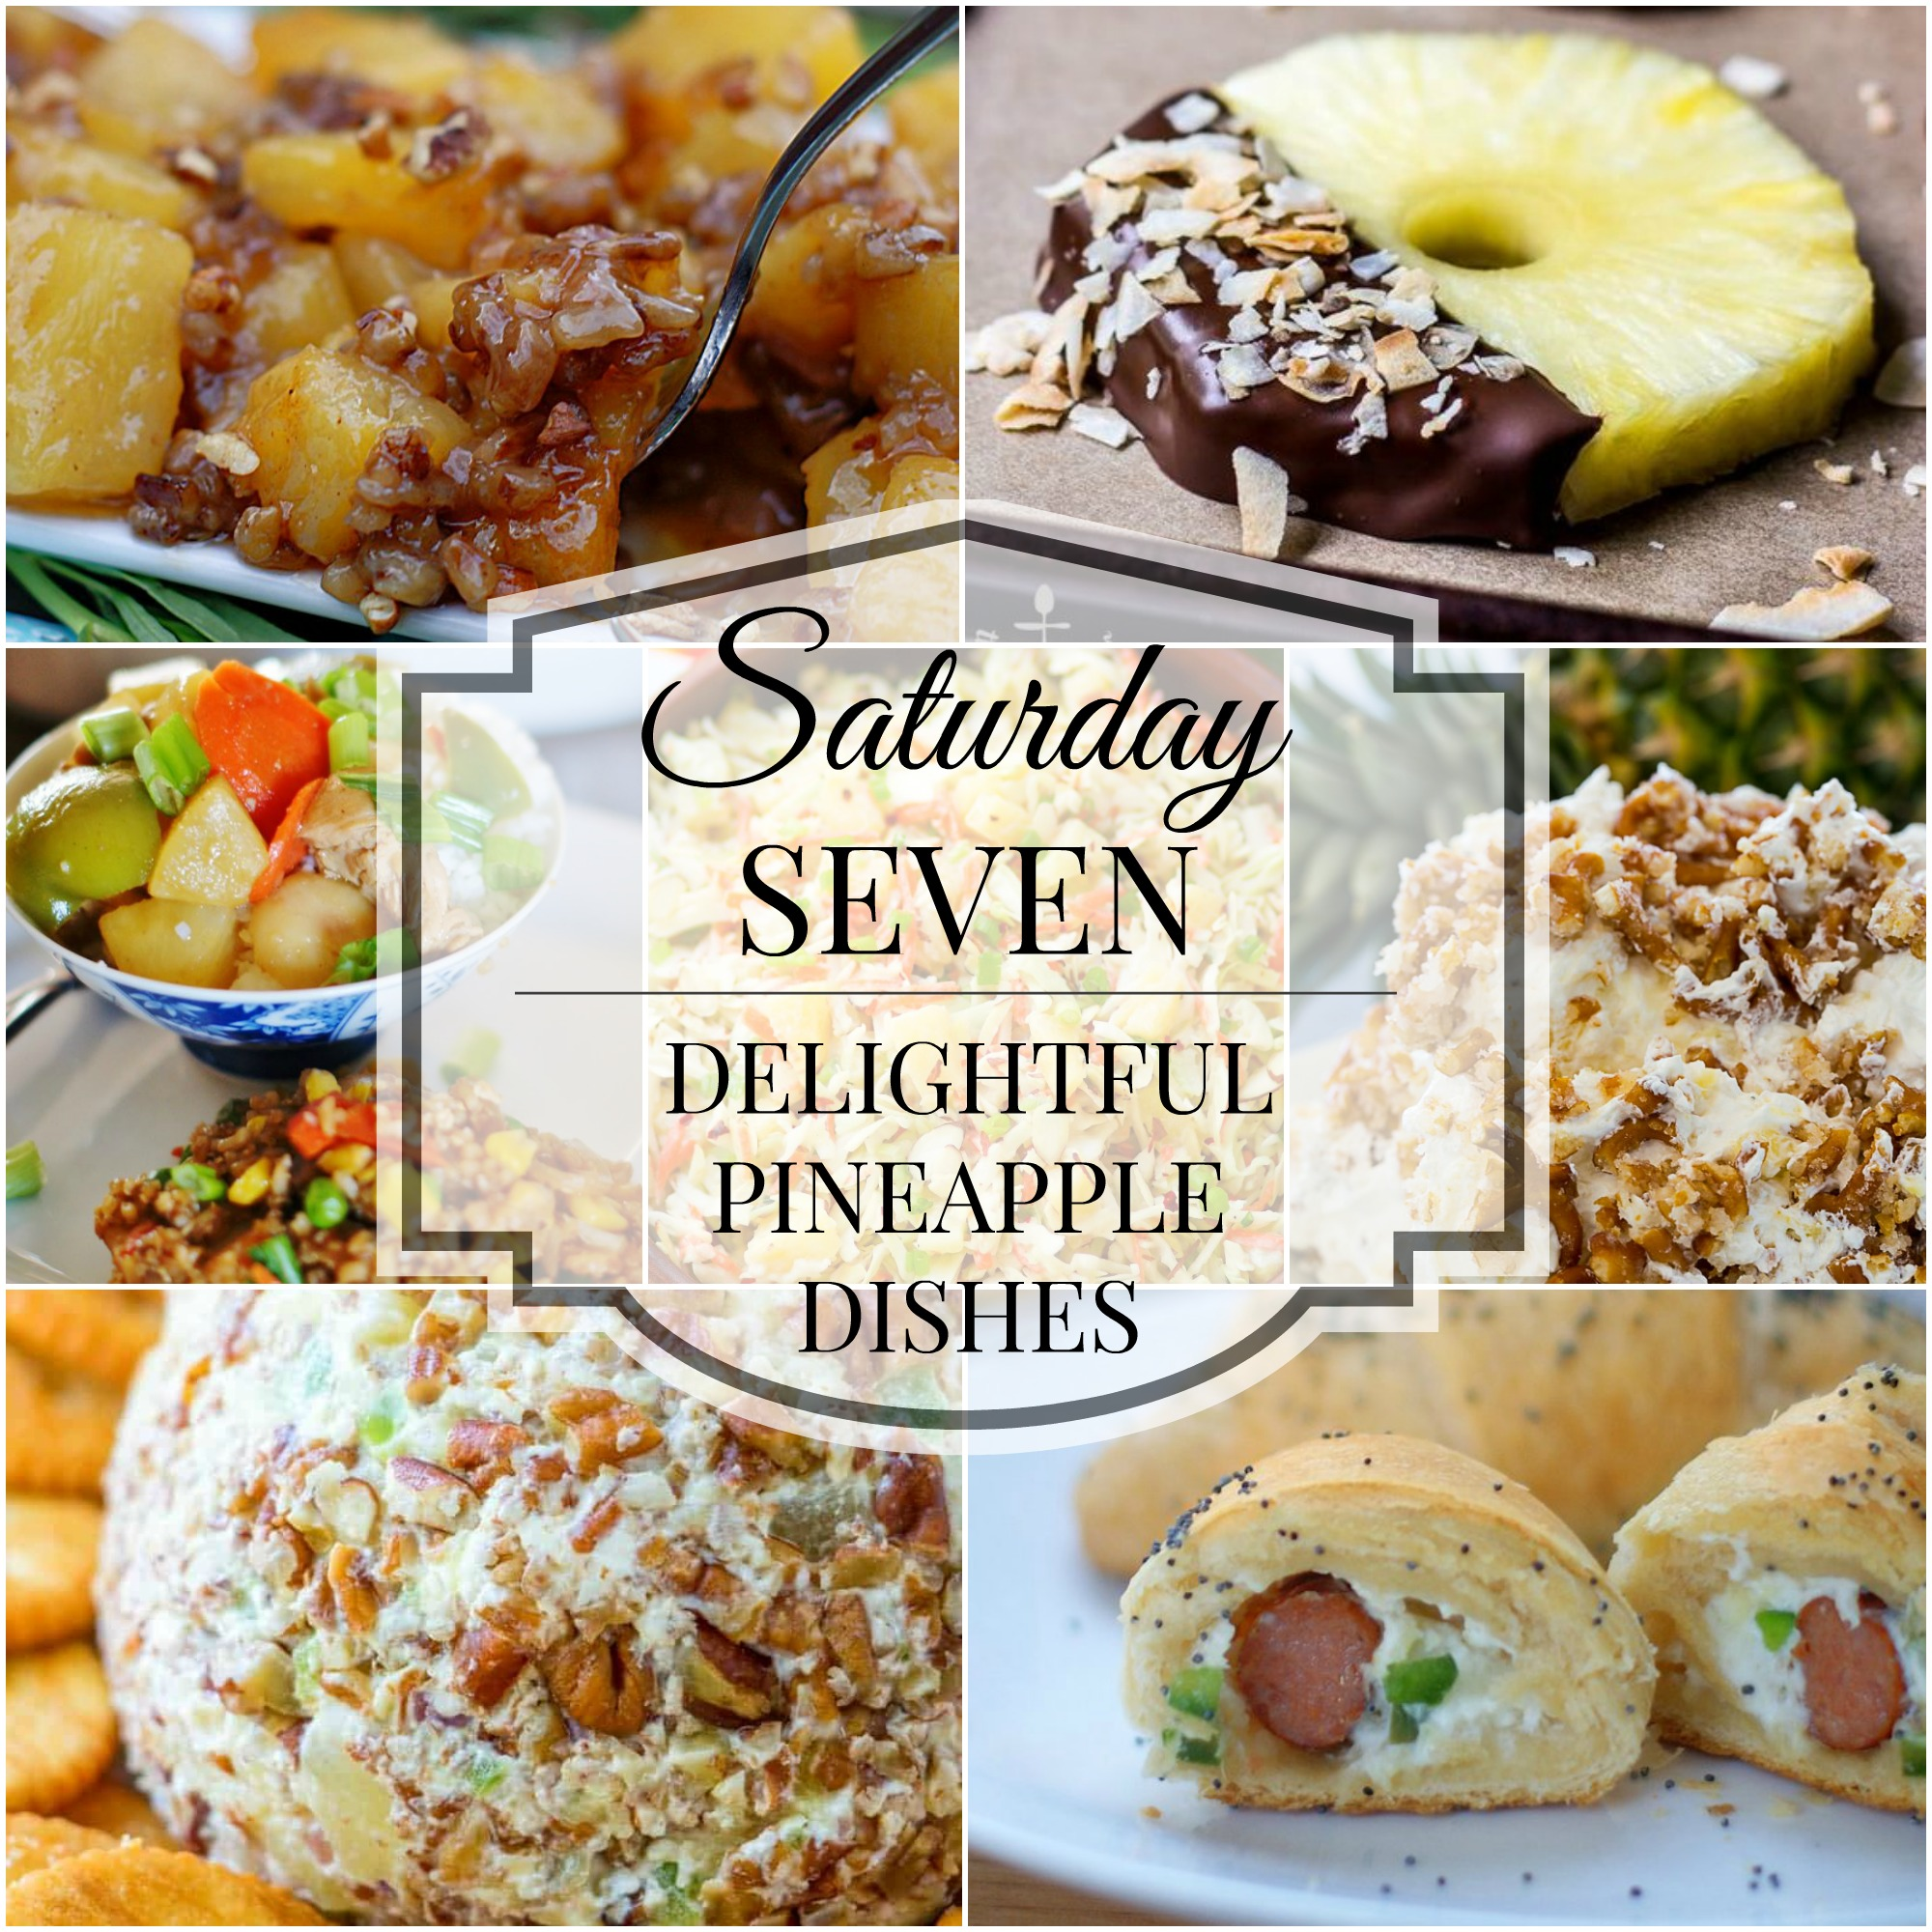 Saturday 7 Delightful Pineapple Dishes Title Collage